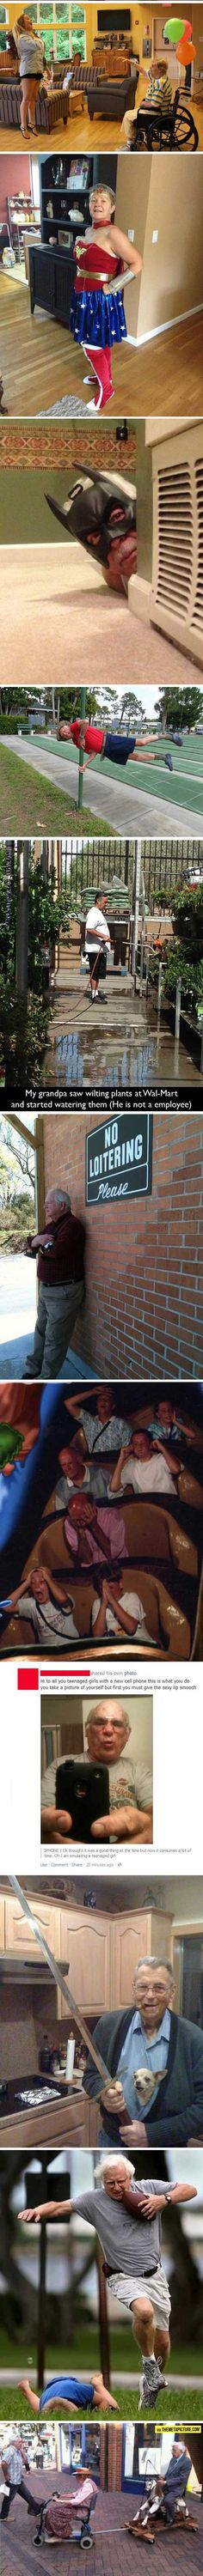 Growing old doesn't mean you have to grow less awesome... - The Meta Picture